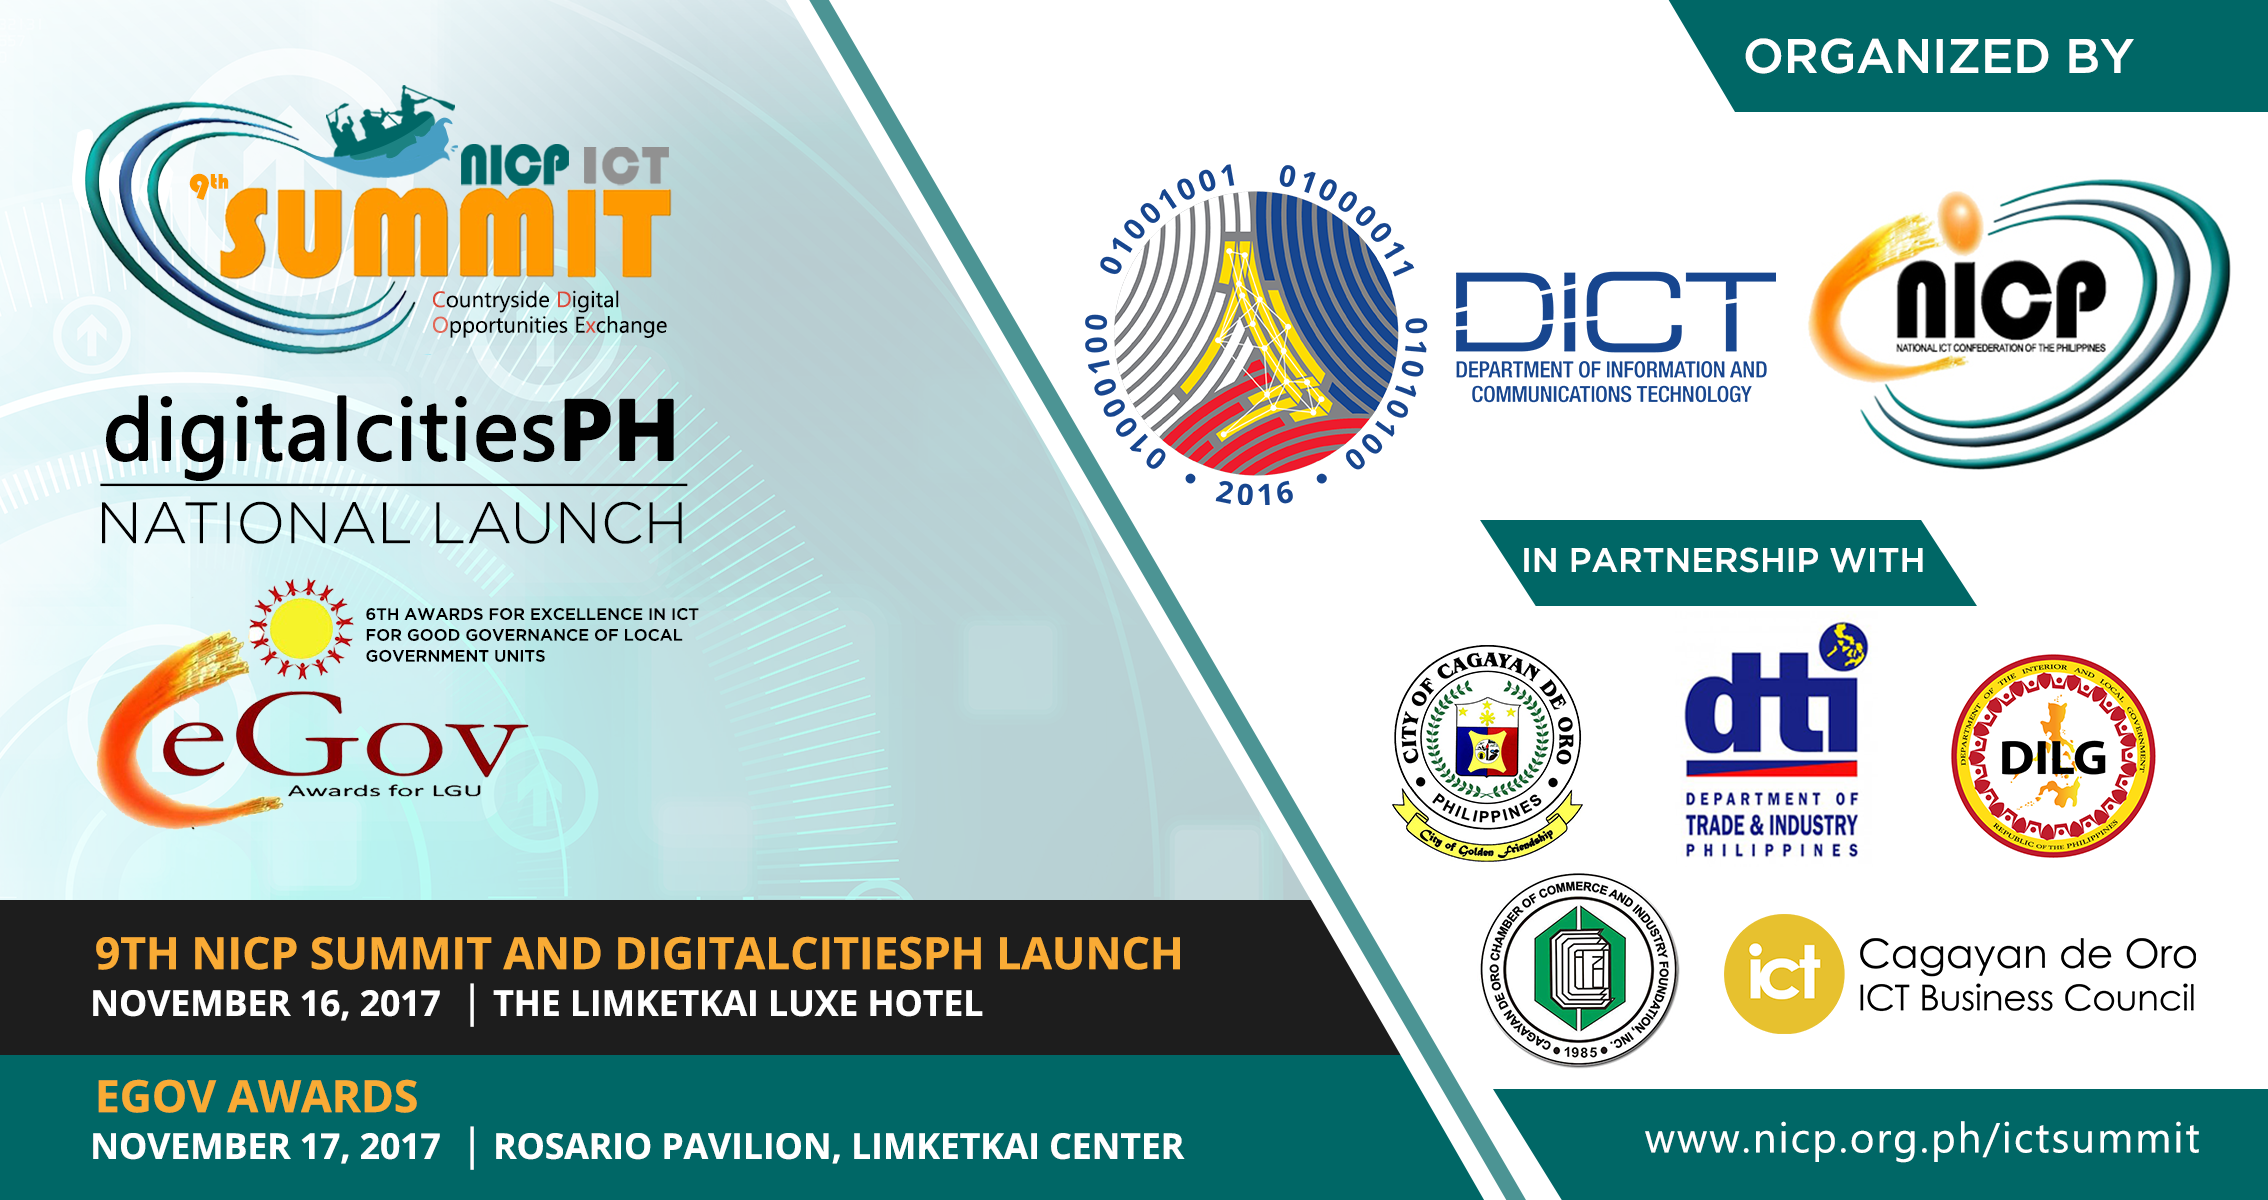 9Th NICP Summit, DigitalCitiesPH and Egov Awards